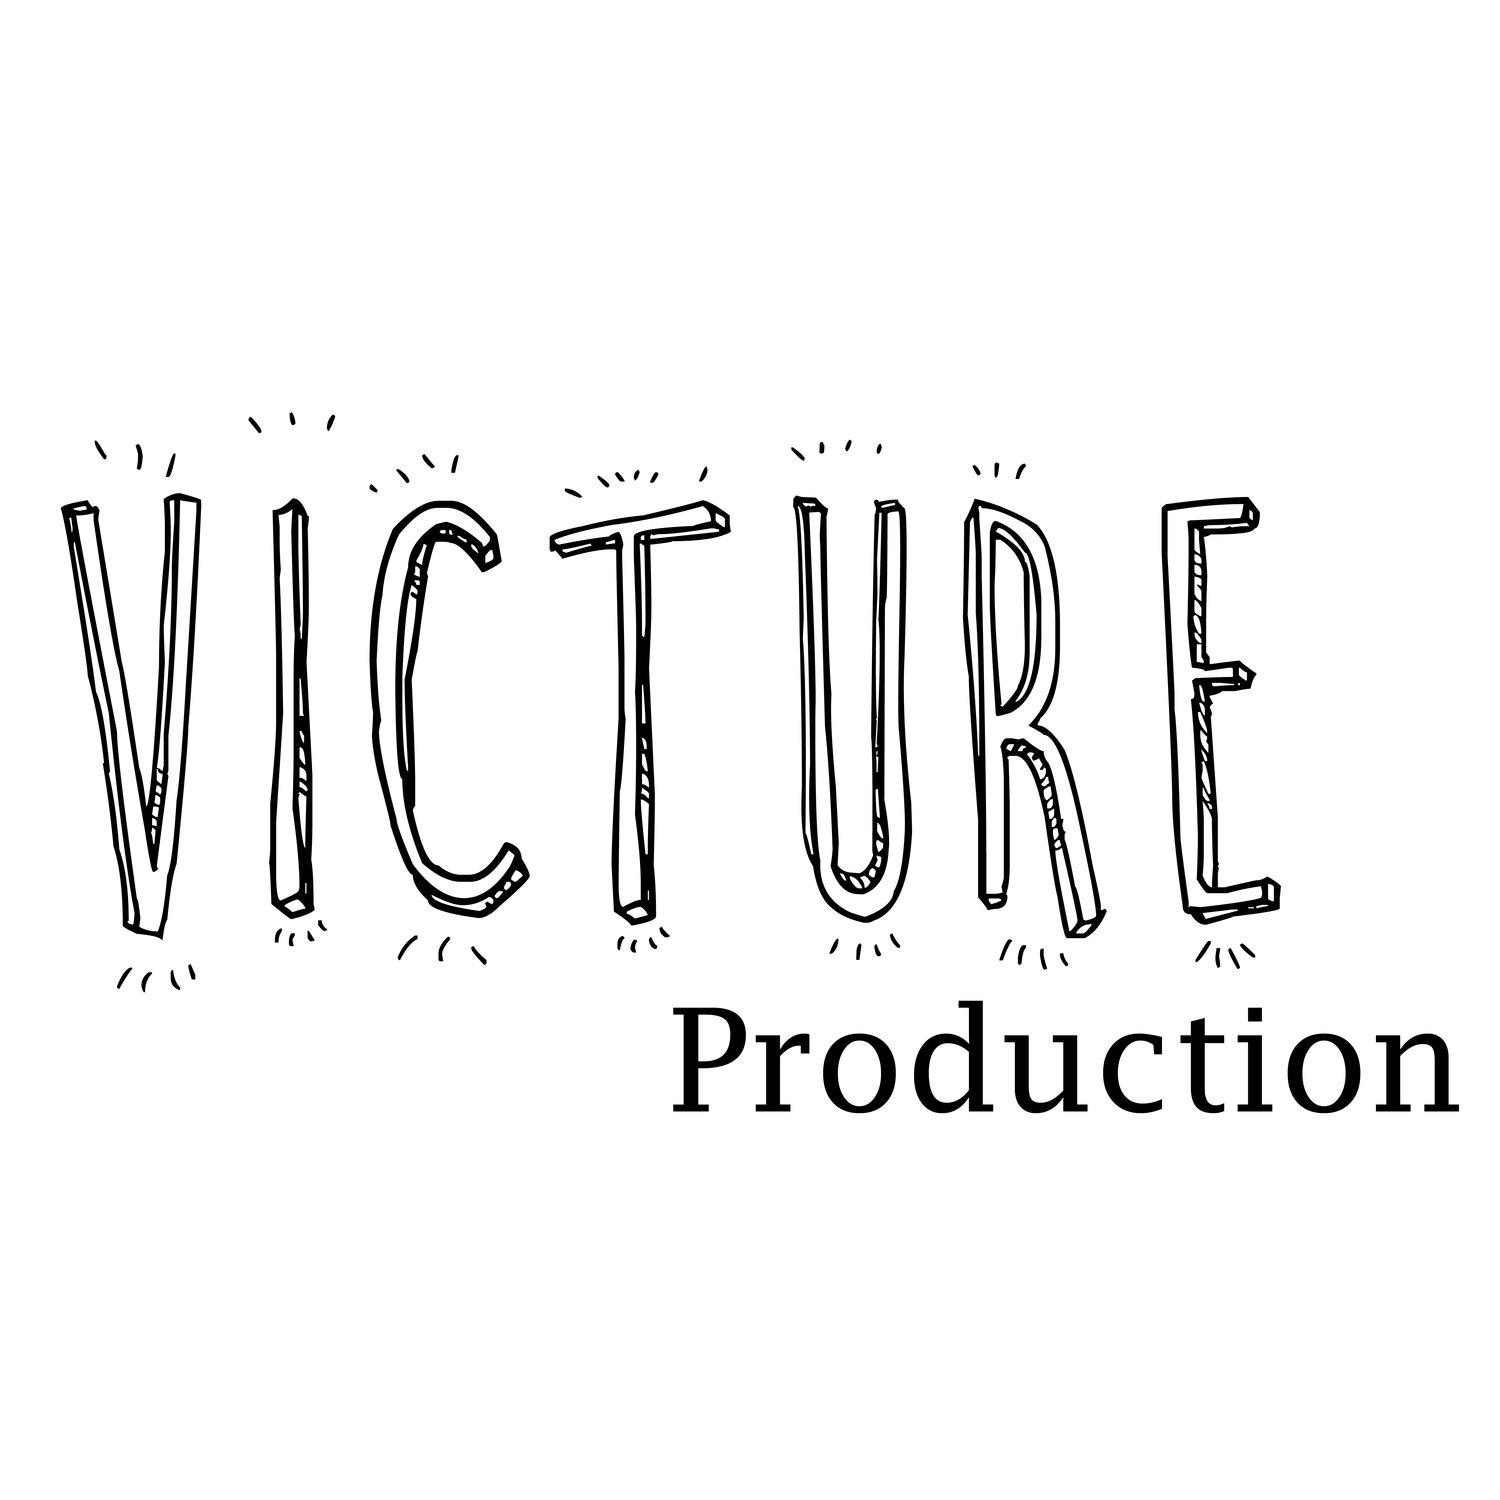 Victure Production